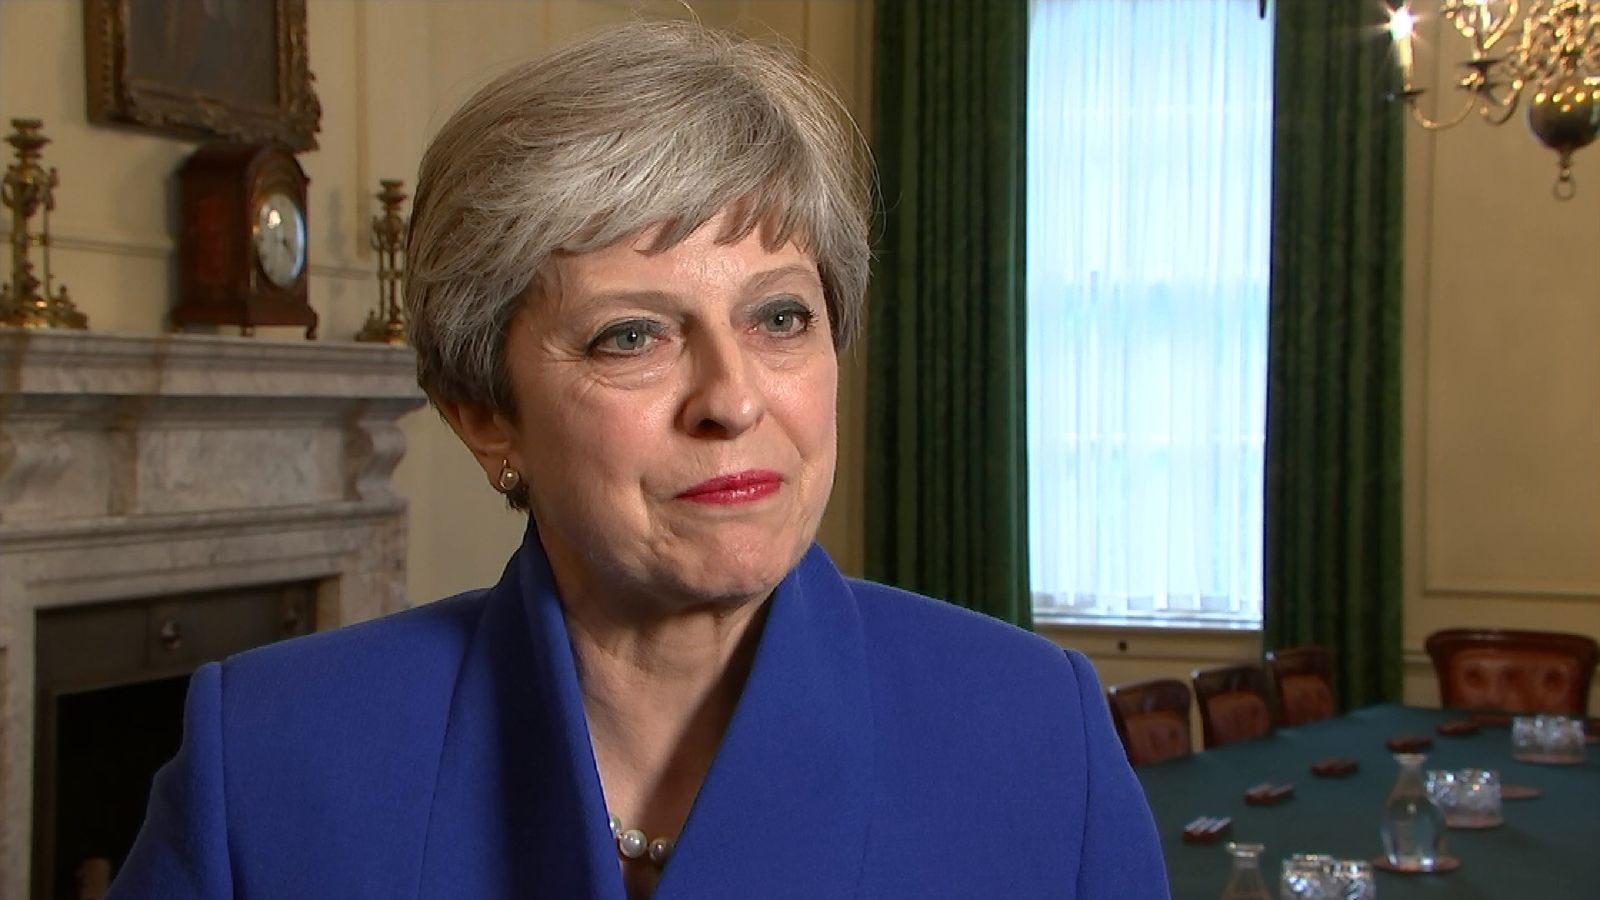 Theresa May reacts to the fact that the election result was not as expected